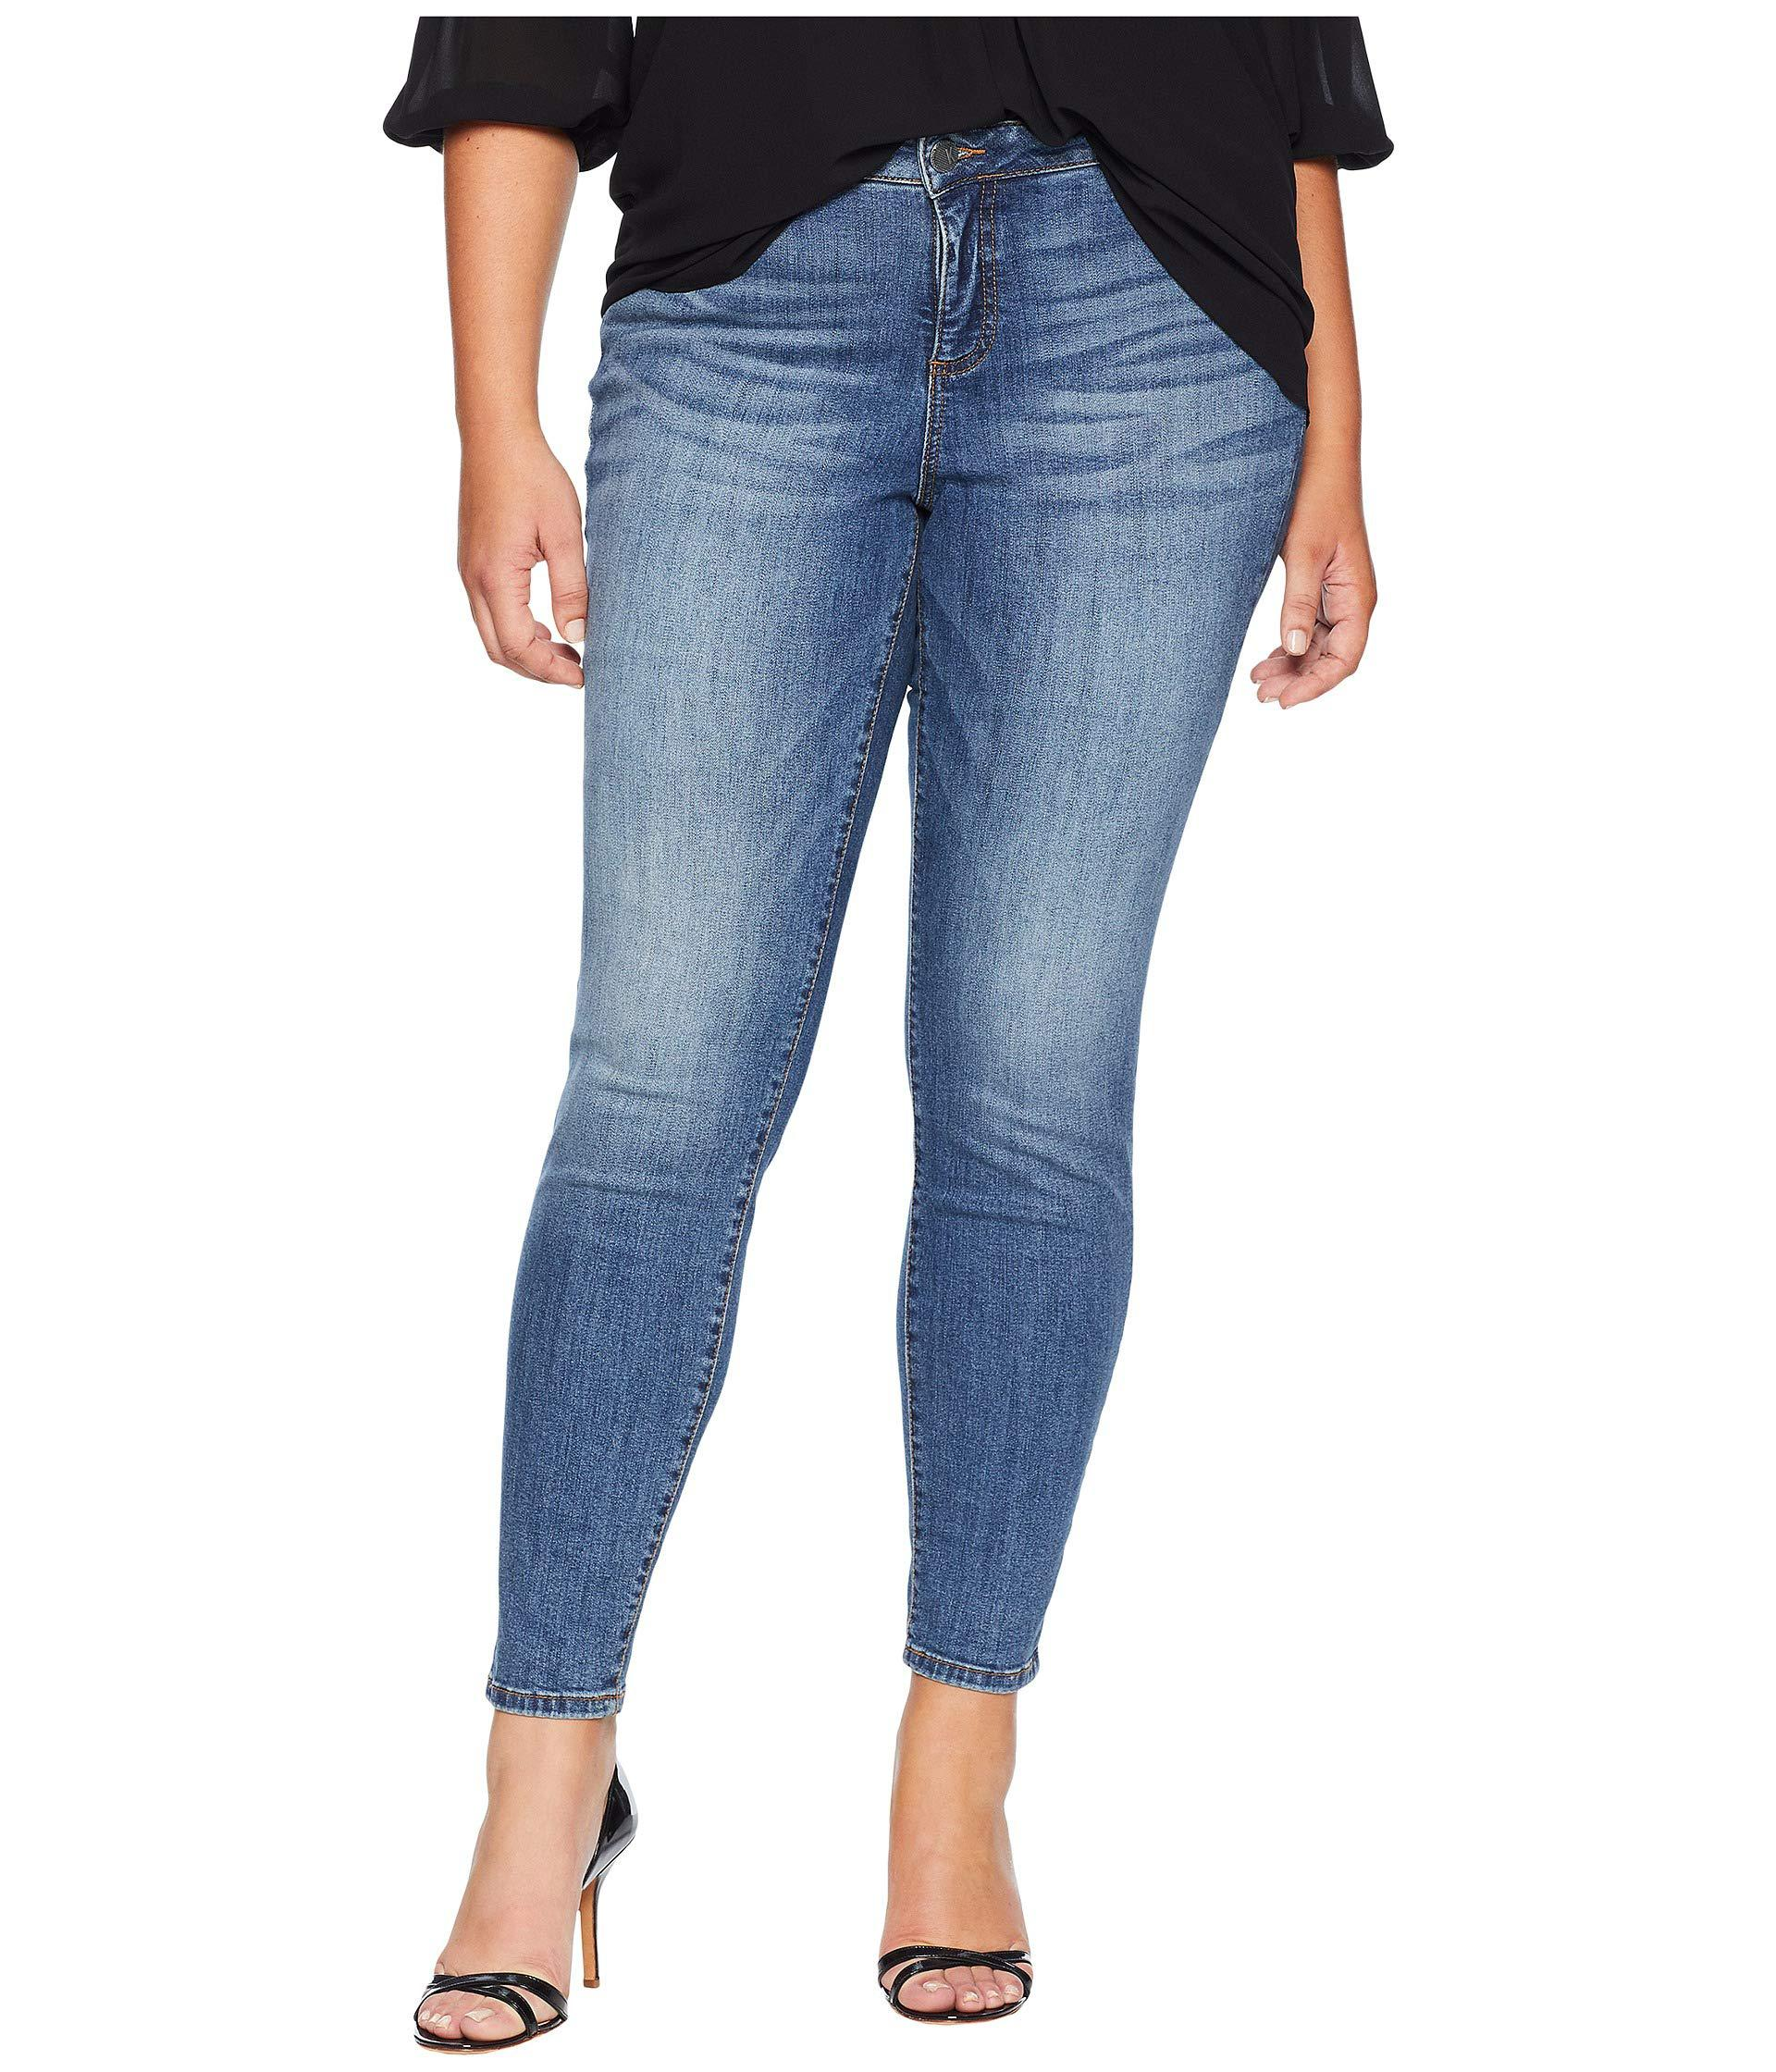 faa4d3a21d2 Lyst - Kut From The Kloth Plus Size Diana Kurvy Skinny Jeans In ...